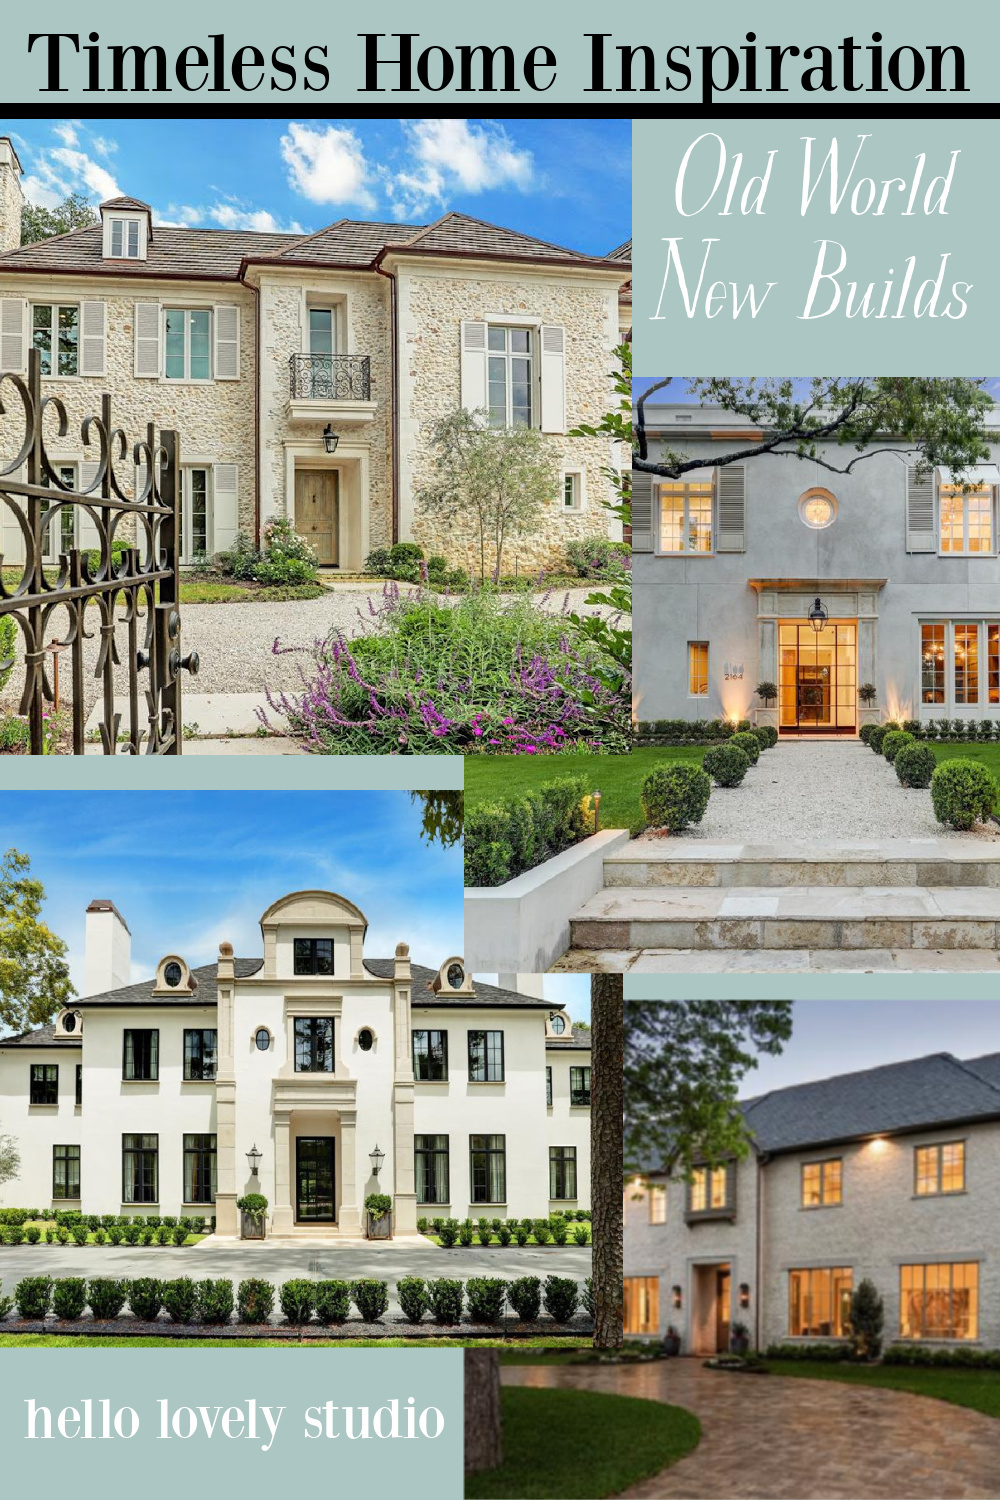 Timeless home inspiration - old world new builds is an inspiring tour of European inspired interiors with exceptional craftsmanship and authenticity. #hellolovelystudio #newconstruction #housedesign #interiordesign #oldworldstyle #frenchcountry